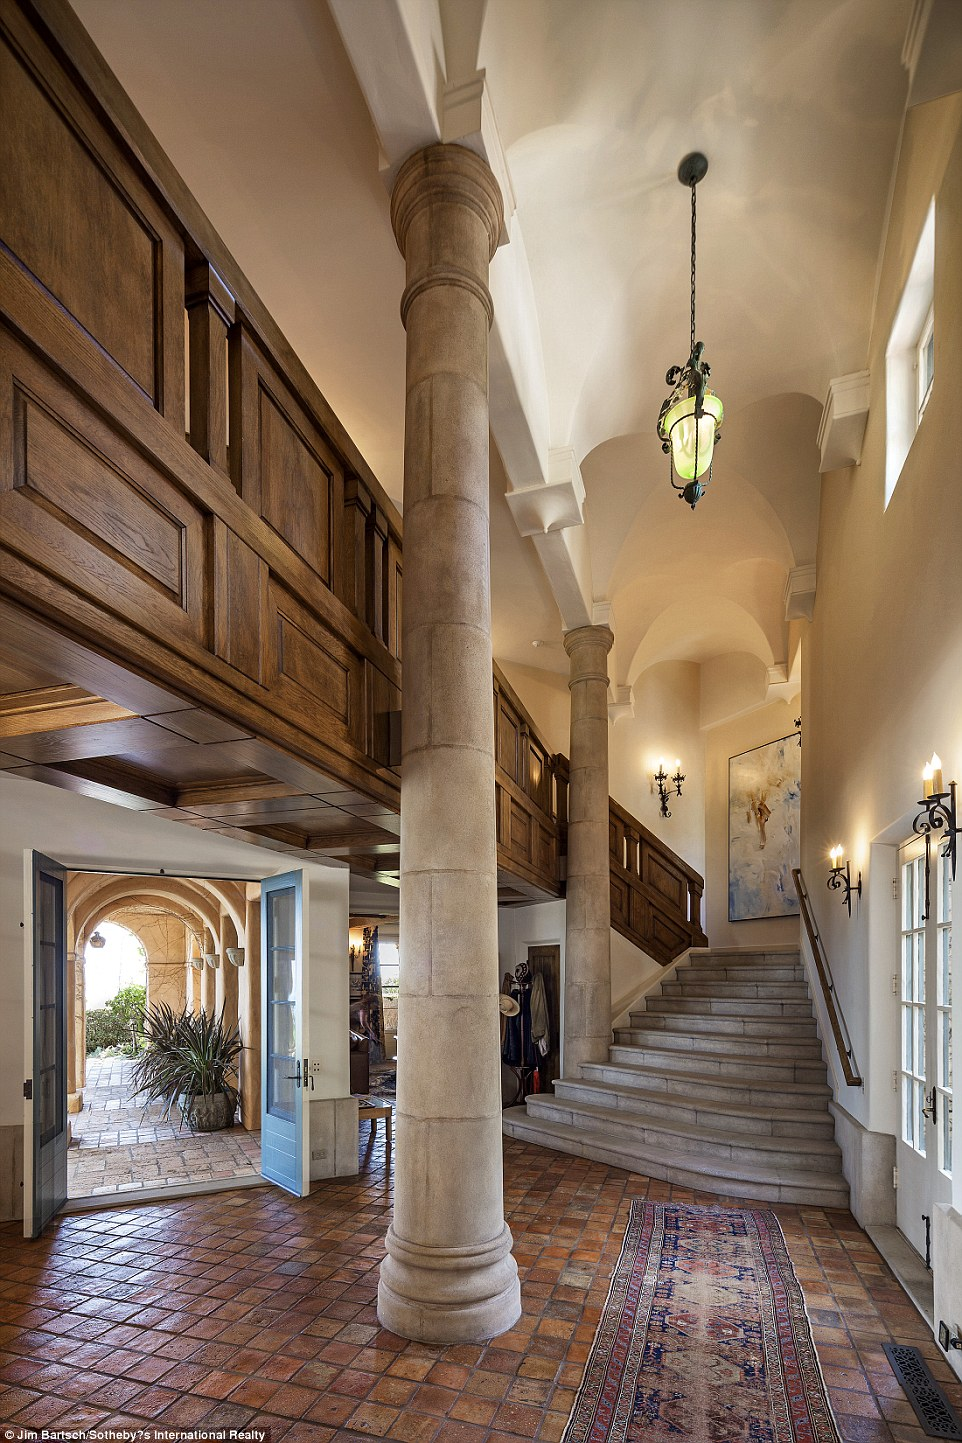 Up and away: A stairway is seen leading toward a higher floor inside Villa Santa Lucia